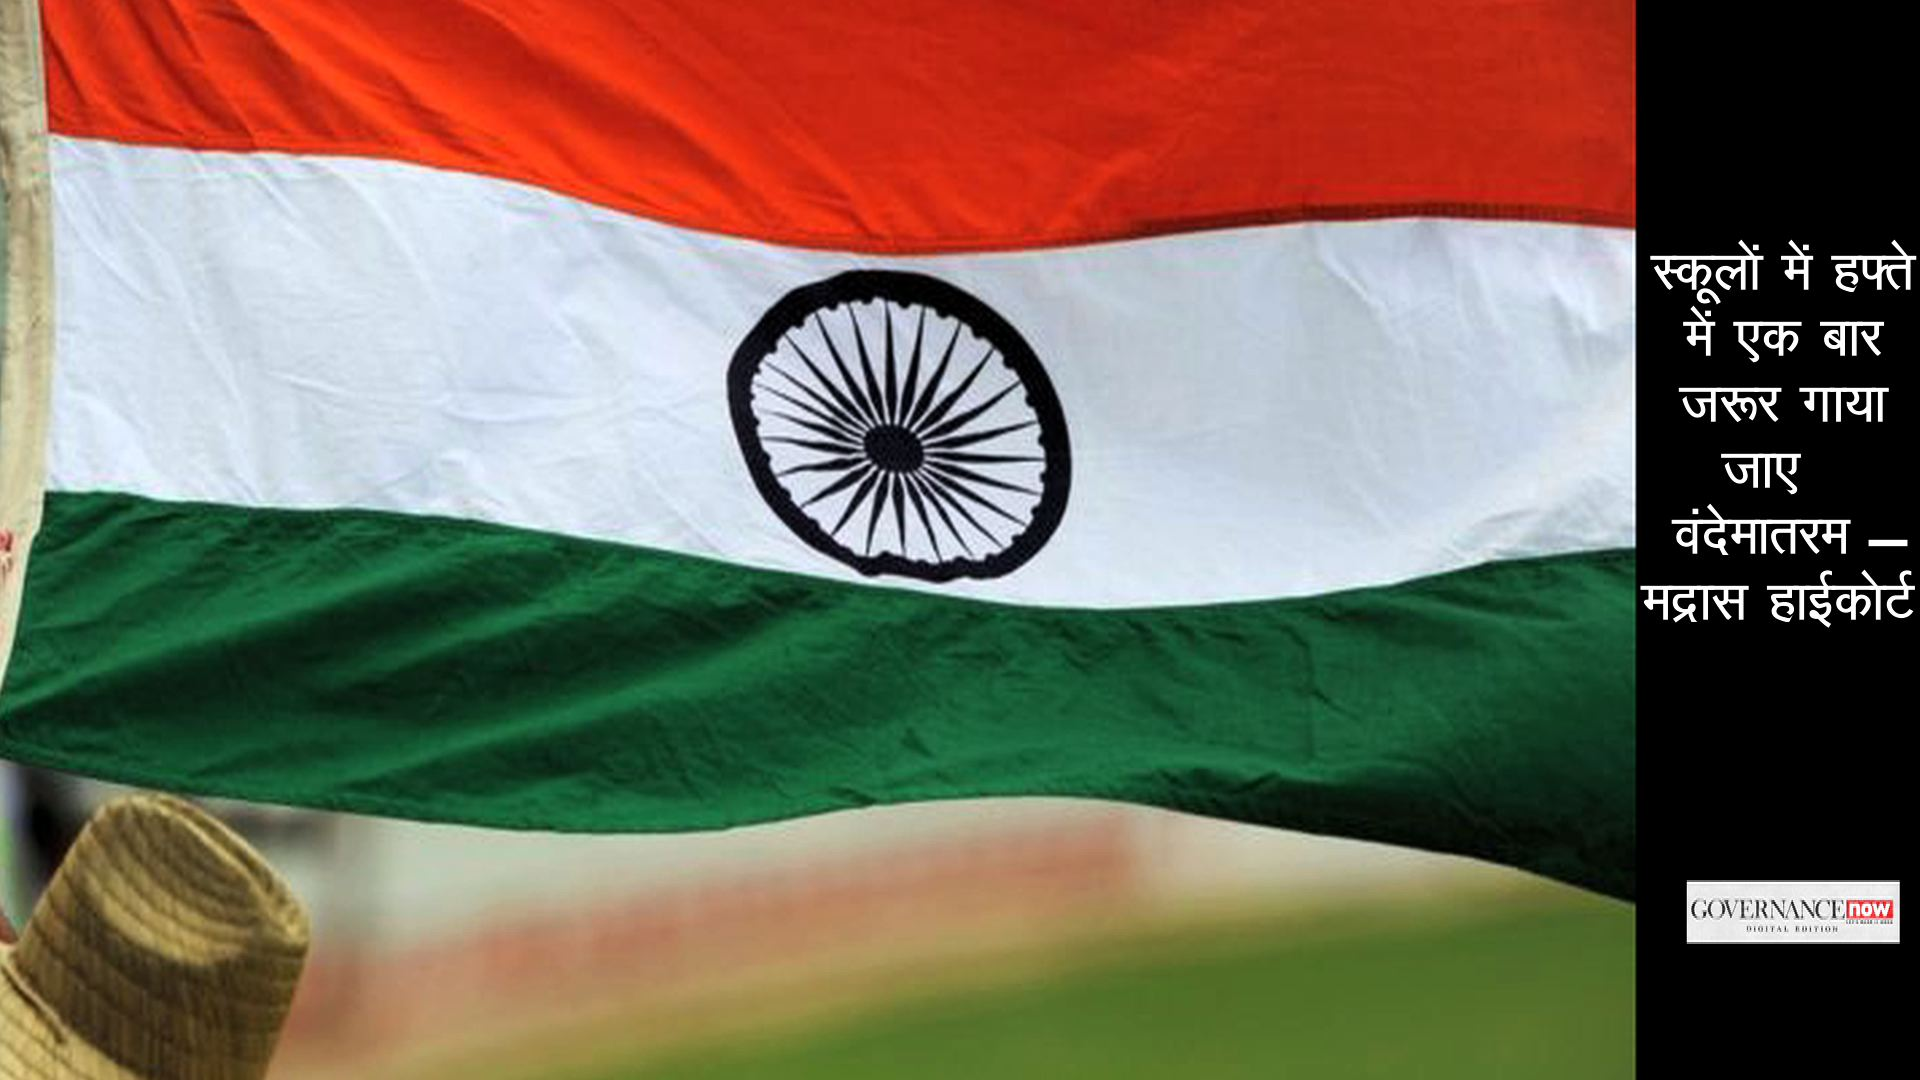 Madras High Court makes Vande Mataram mandatory in schools and colleges in Tamilnadu